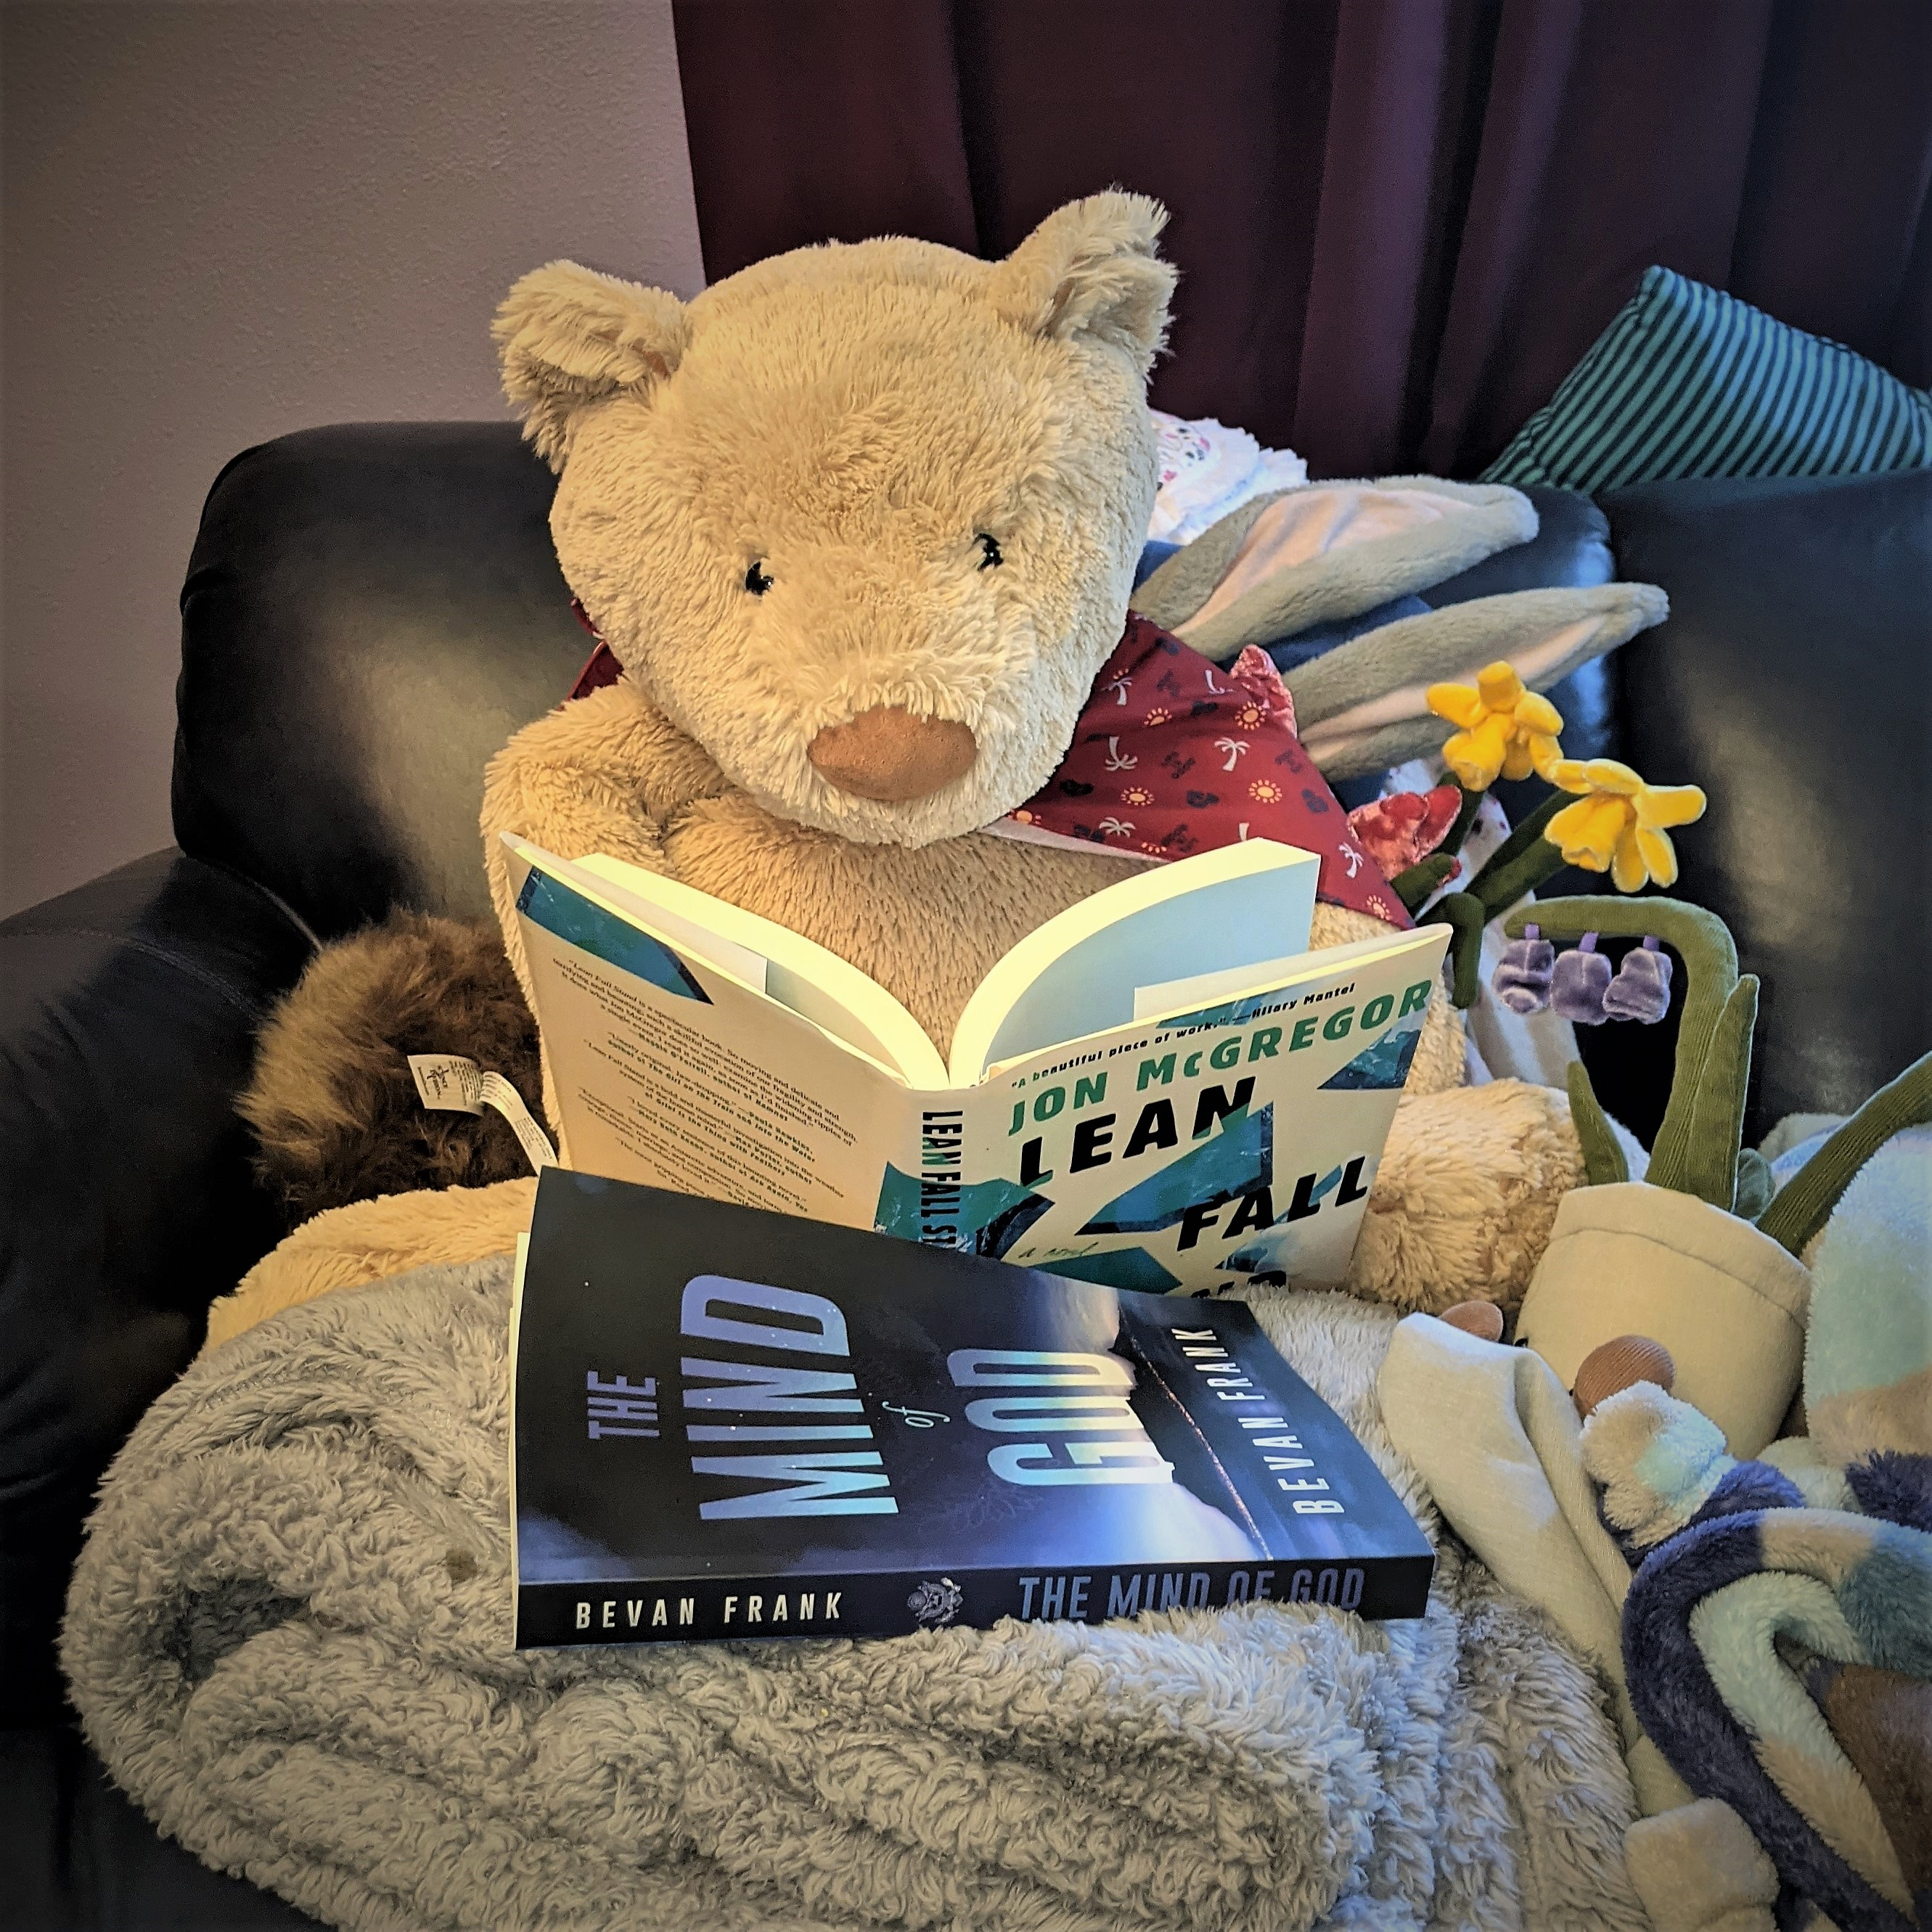 Oatmeal, a light-brown Jellycat brand teddy bear, sits on a couch and read's Jon McGregor's Lean Fall Stand